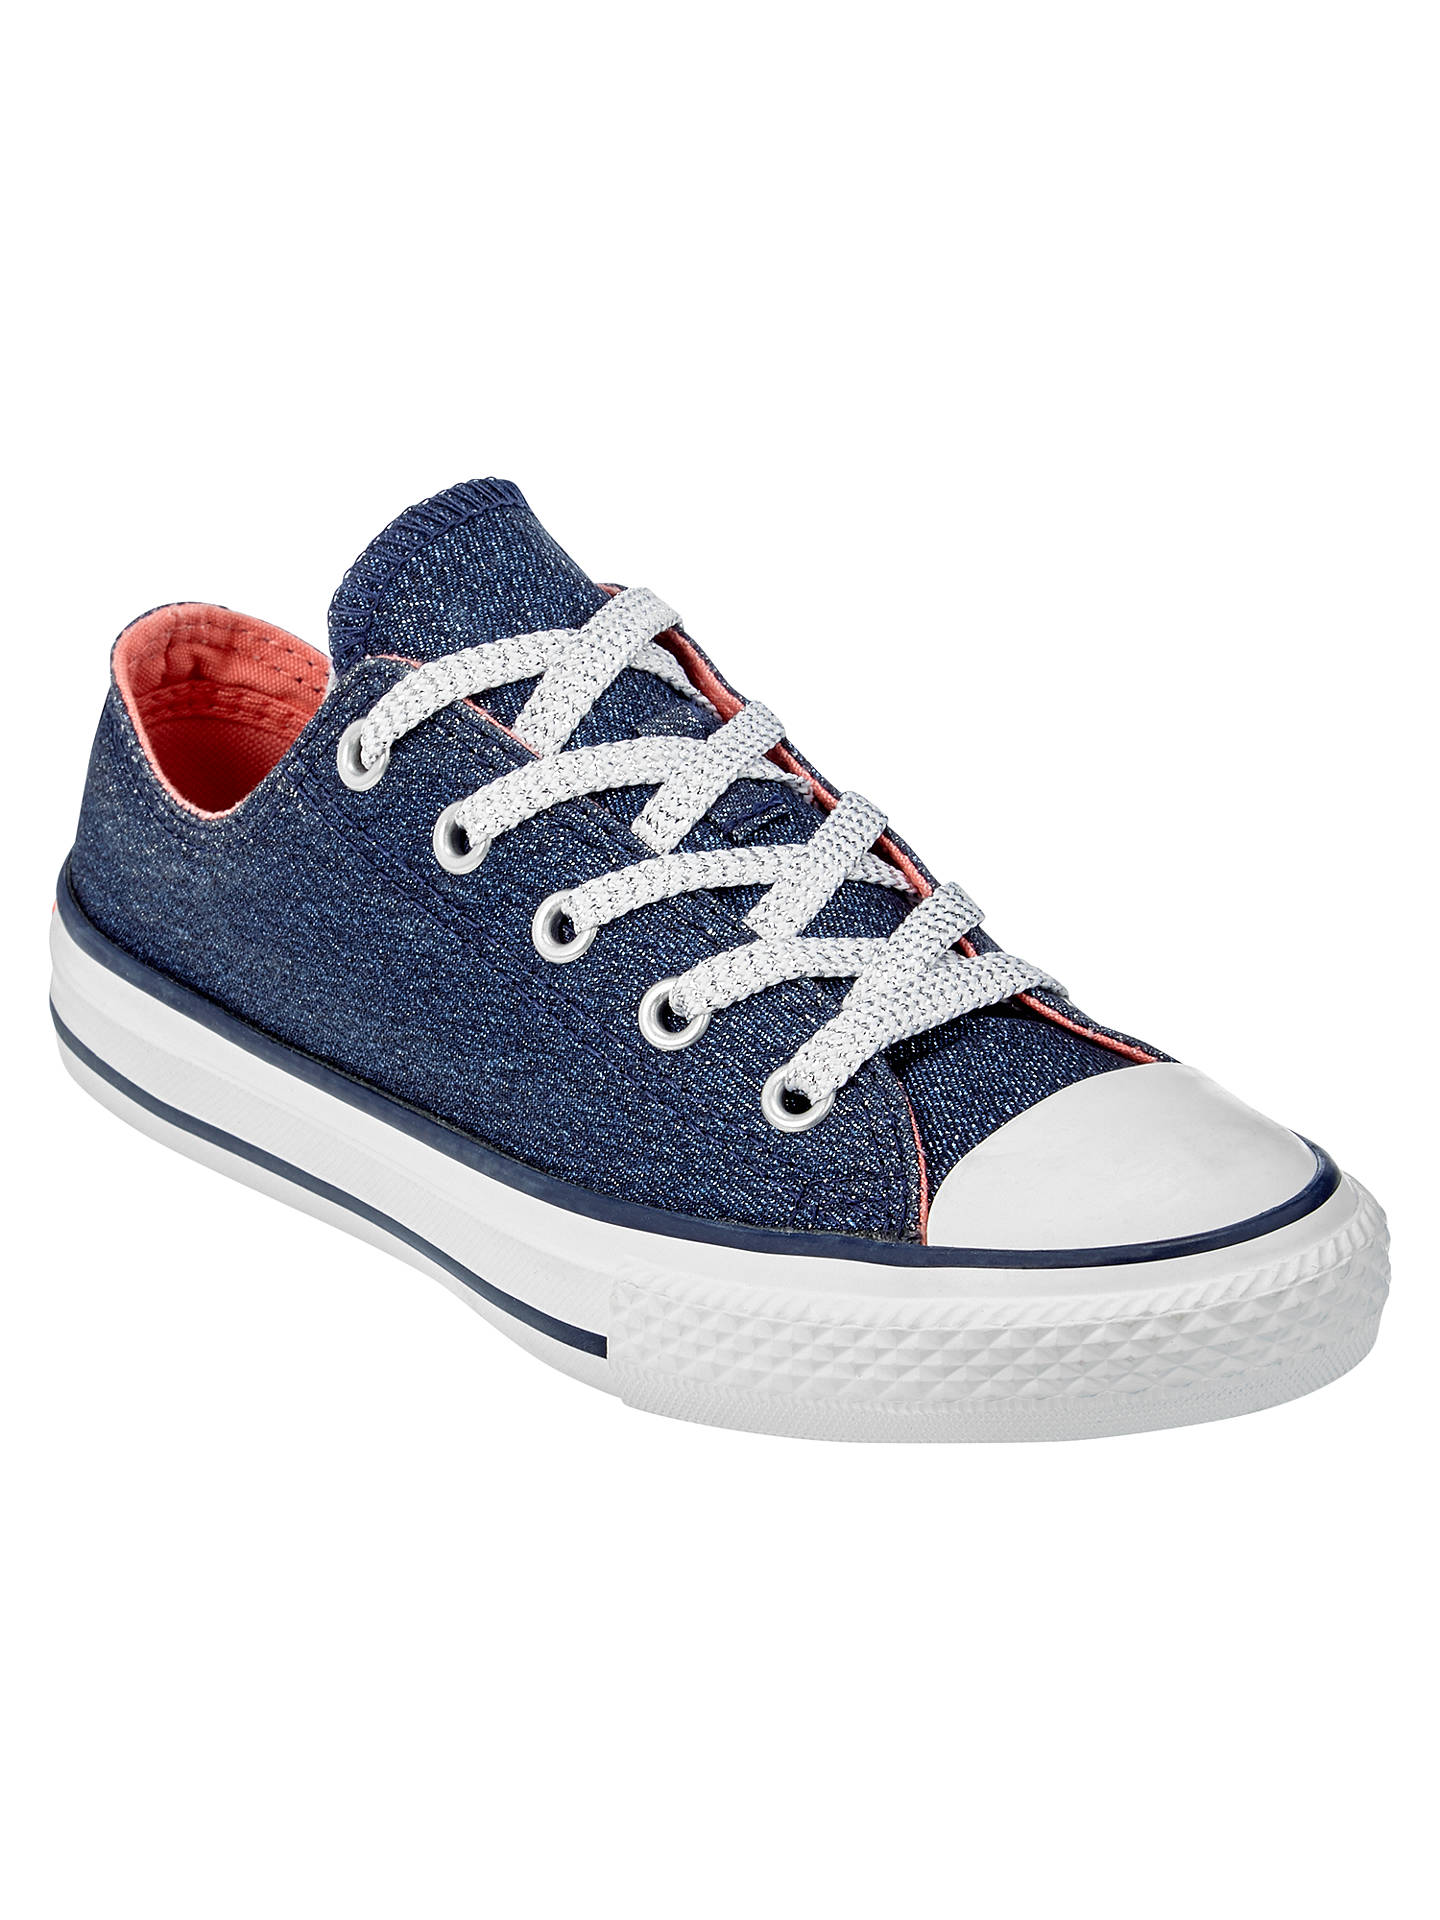 6ae11050147 BuyConverse Children s Chuck Taylor All Star Ox Trainers